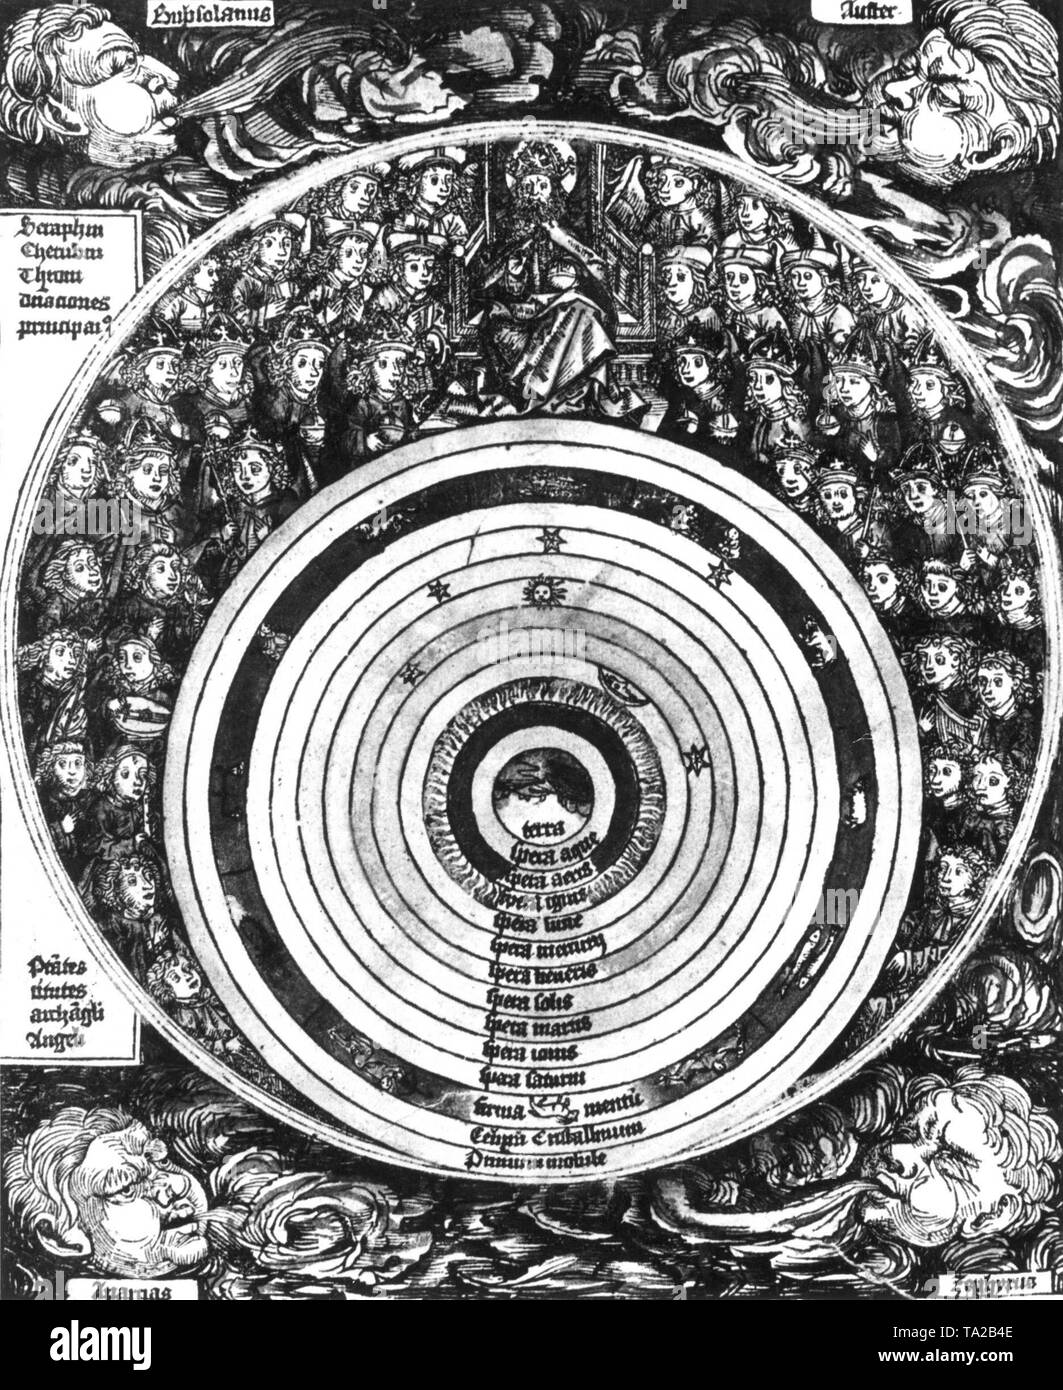 The world system of ancient astronomer Ptolemy (around 150 AD.) The Earth rested in the center of the universe with the planets rotating around it, with the Sun in the middle. After a woodcut from the book of the chronicles of Hartmann Schedel, Nuremberg 1493 Stock Photo